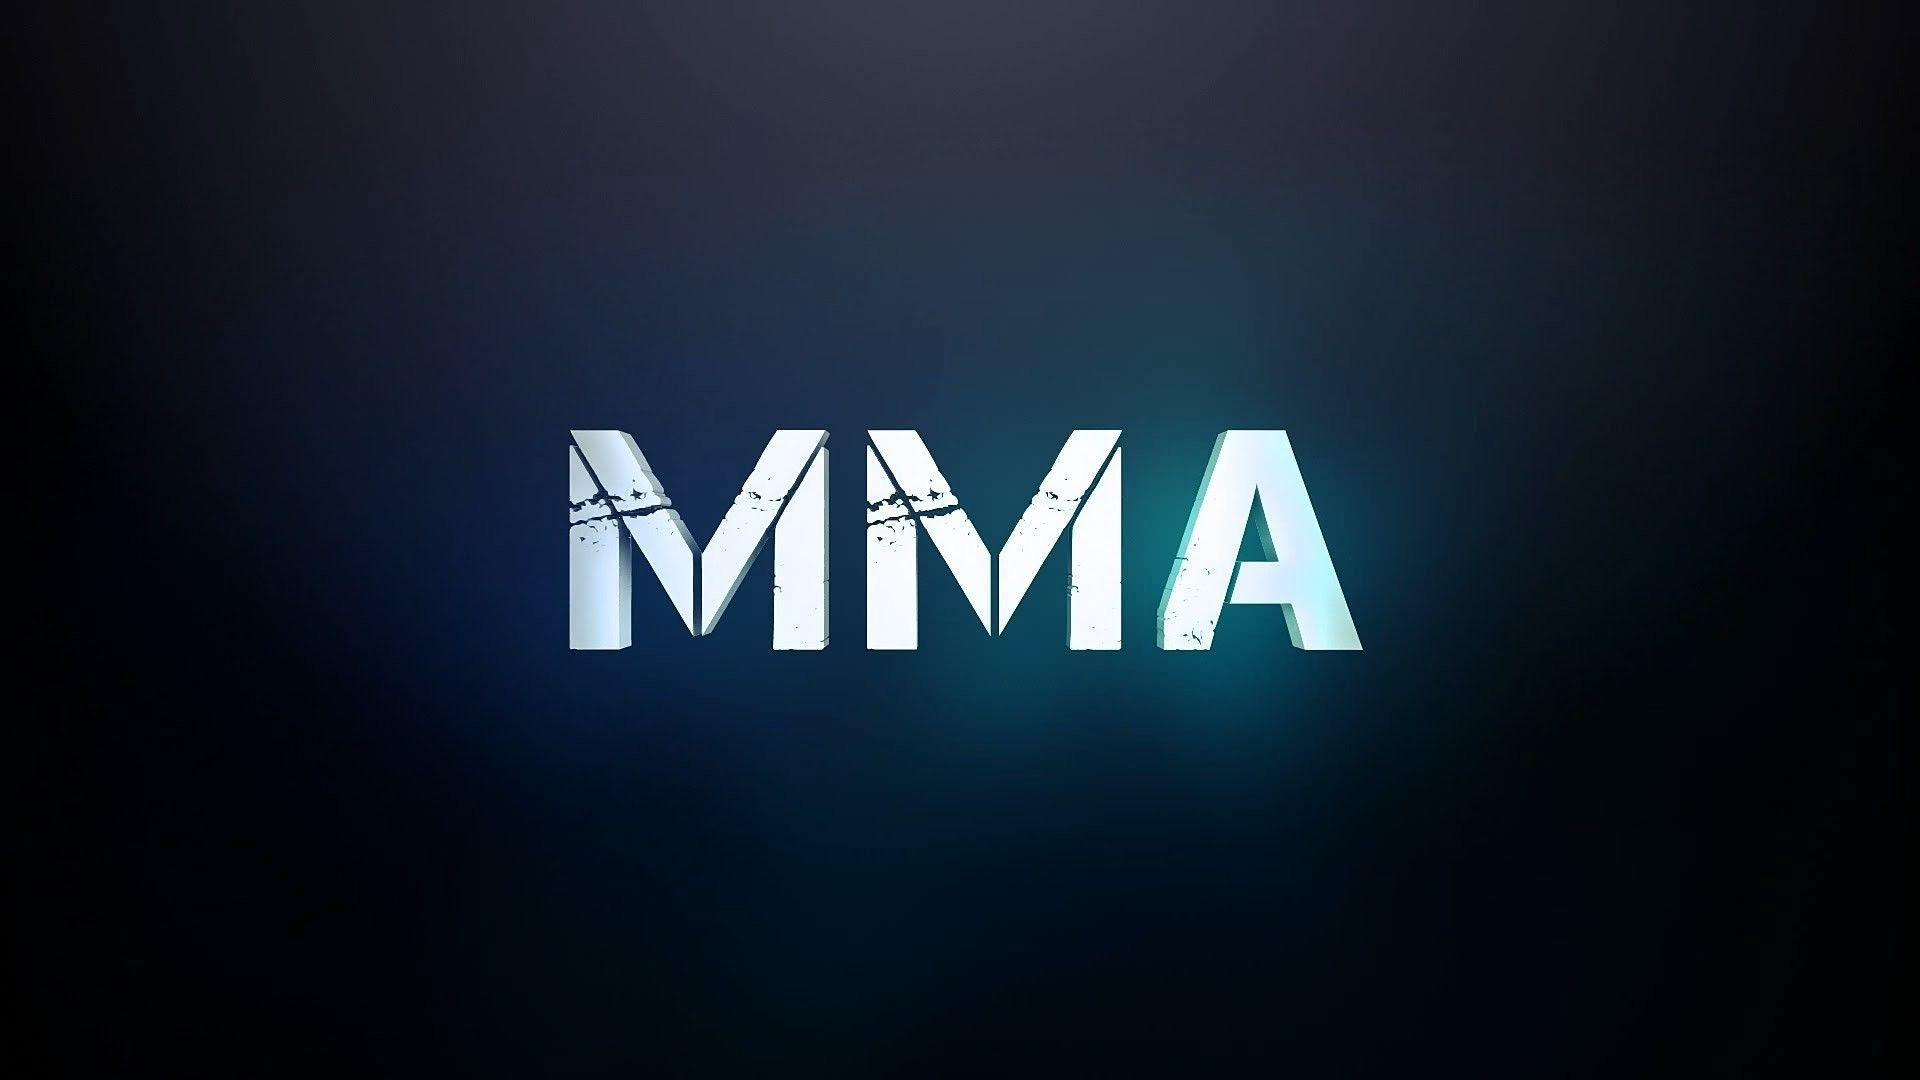 Mma Logo Wallpapers Wallpaper Cave